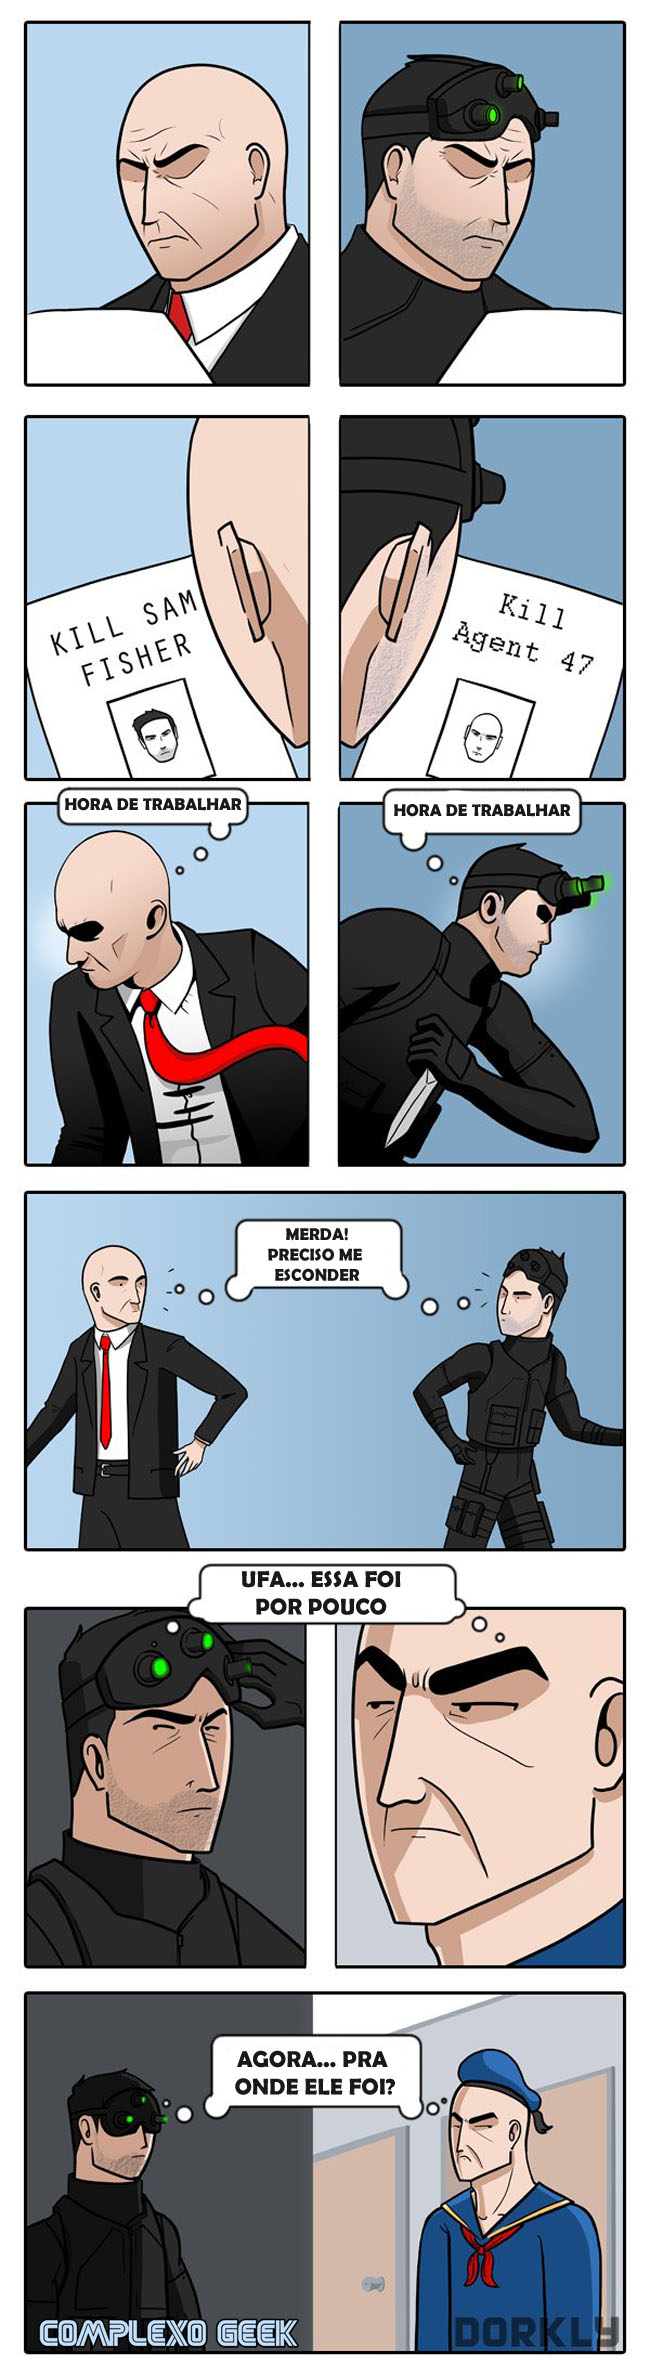 0 a agent 47